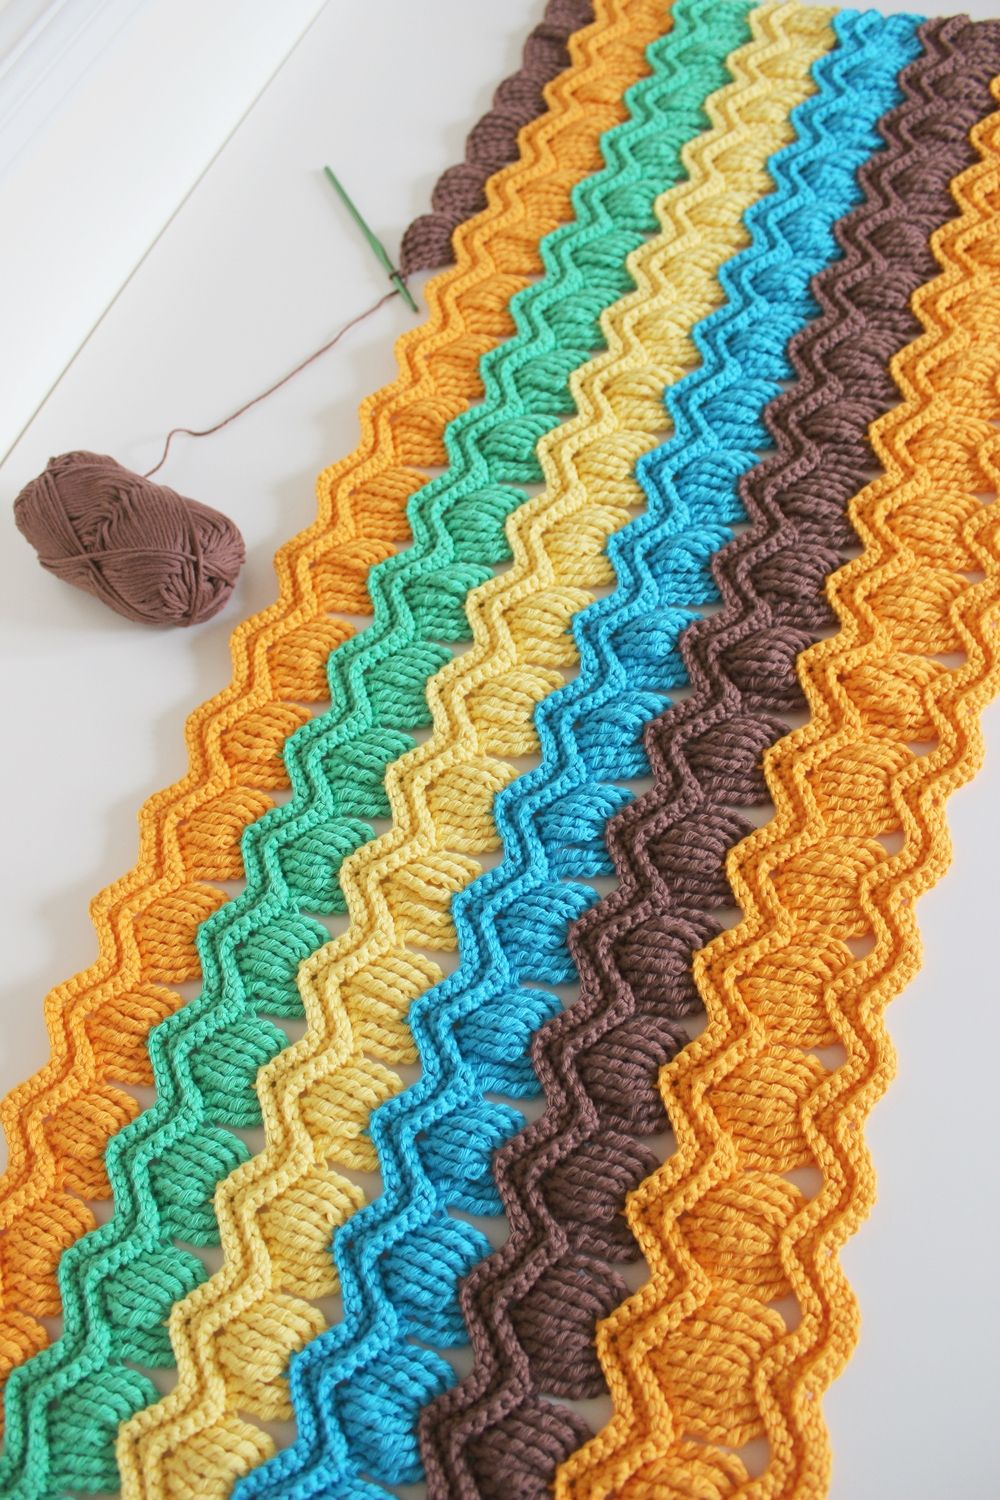 Currently creating: Crochet vintage fan ripple blanket | Ganchillo ...